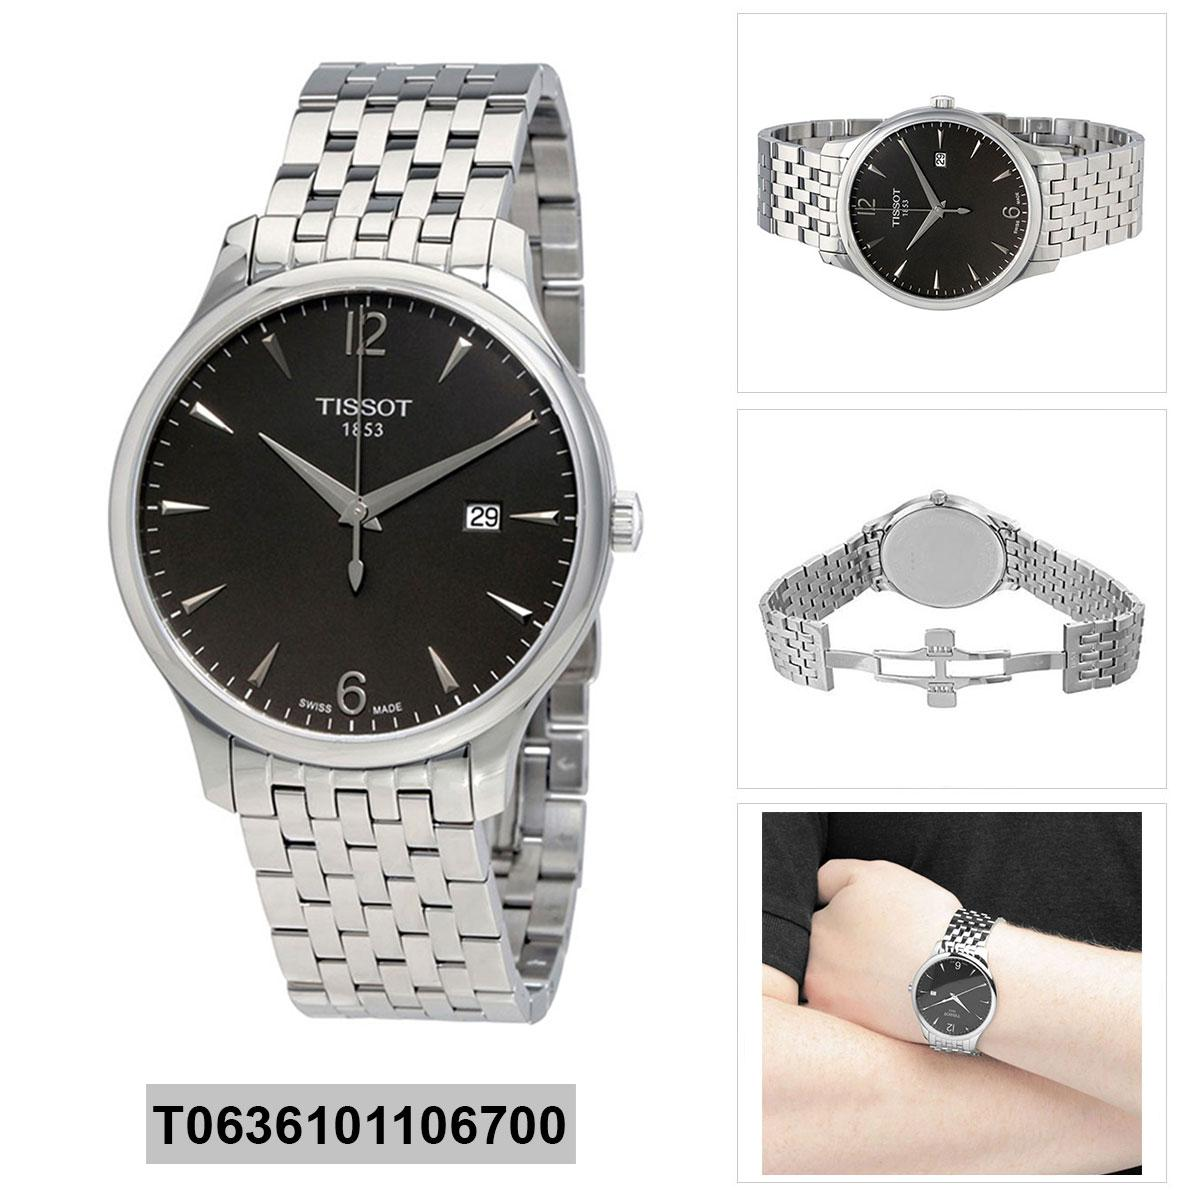 Affordable Watches for Sale Philippines Price List